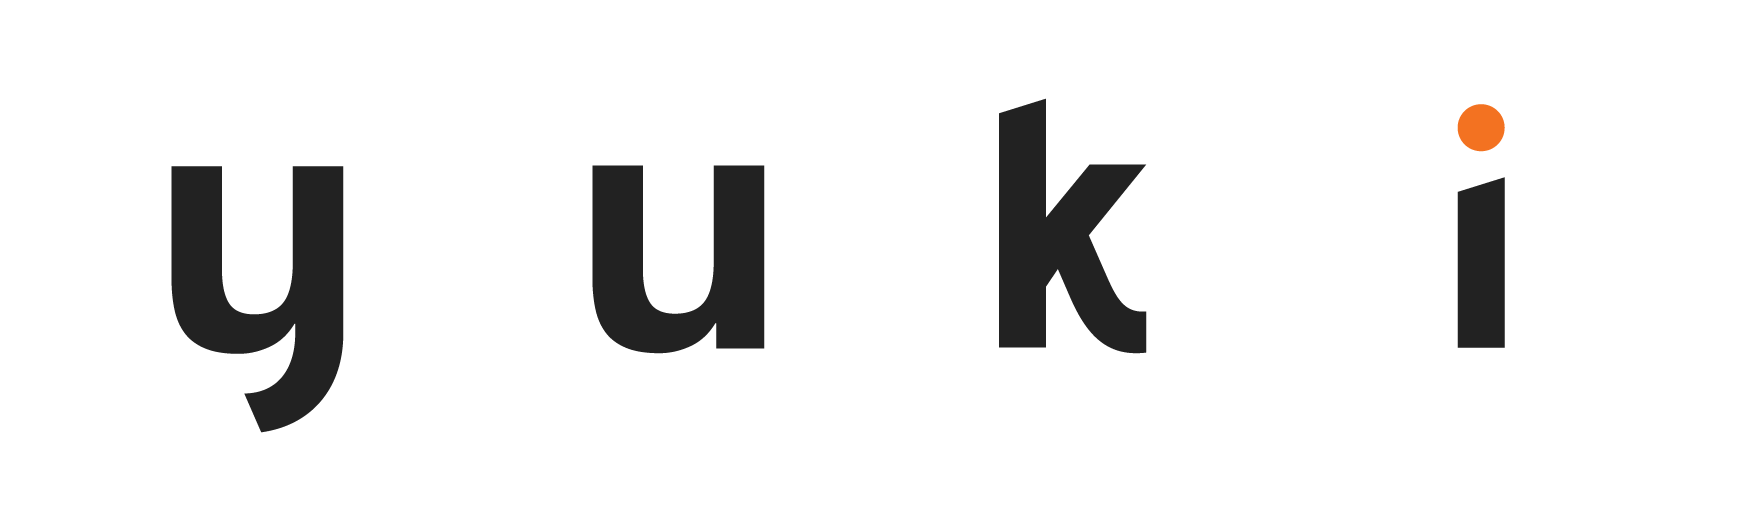 Visma Continues To Expand In The Dutch Accounting Office Space With The Acquisition Of Yuki Visma